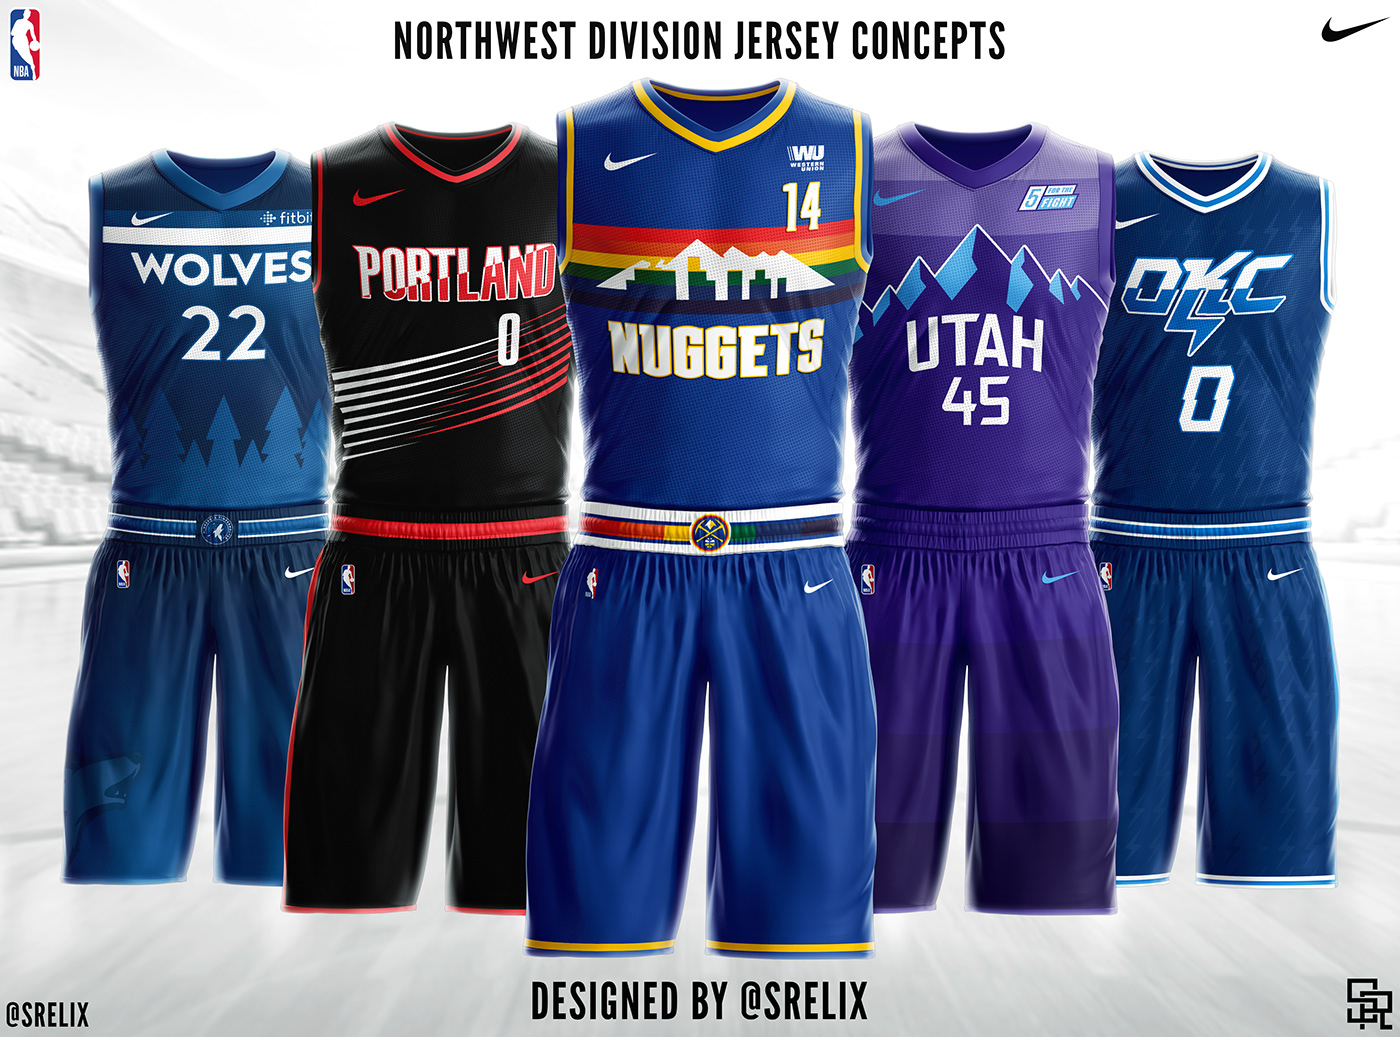 NBA Jersey Concepts on Behance 4c351b316090